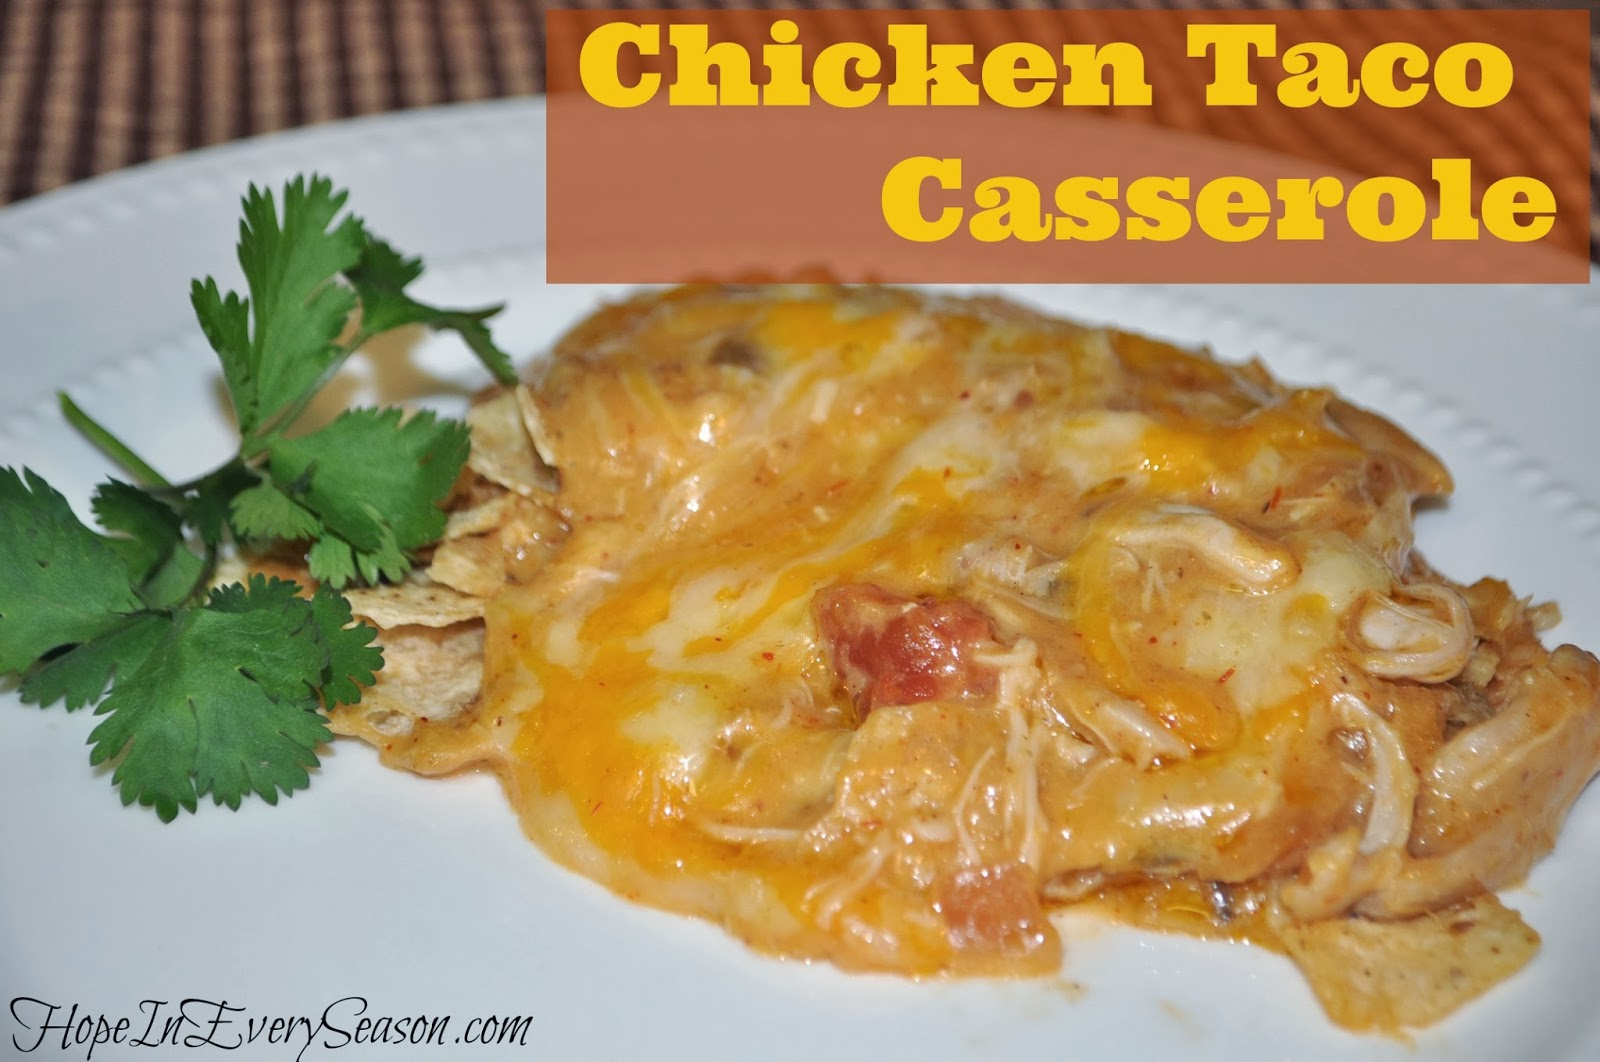 chicken taco casserole 5 boneless skinless chicken breast halves ...